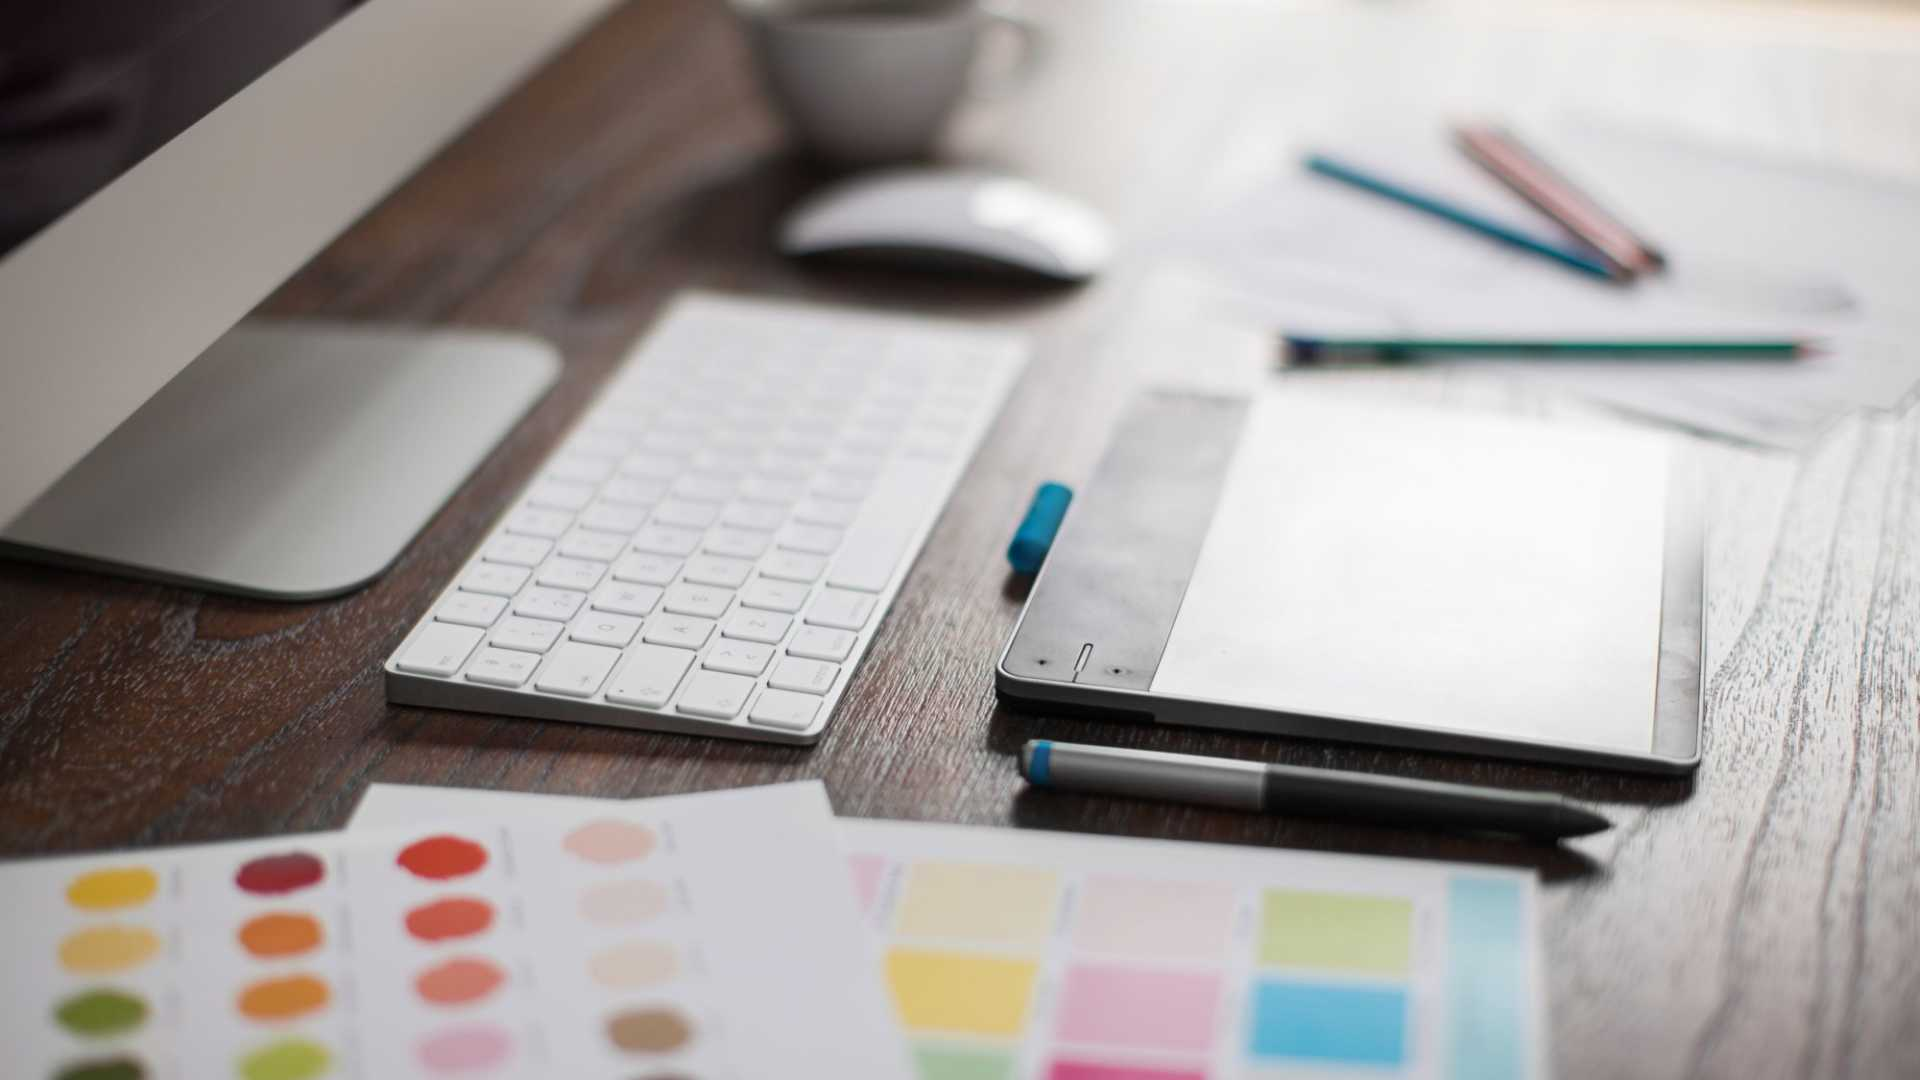 Thinking About Cutting Your Design Budget? 3 Reasons You Shouldn't Skimp on Design